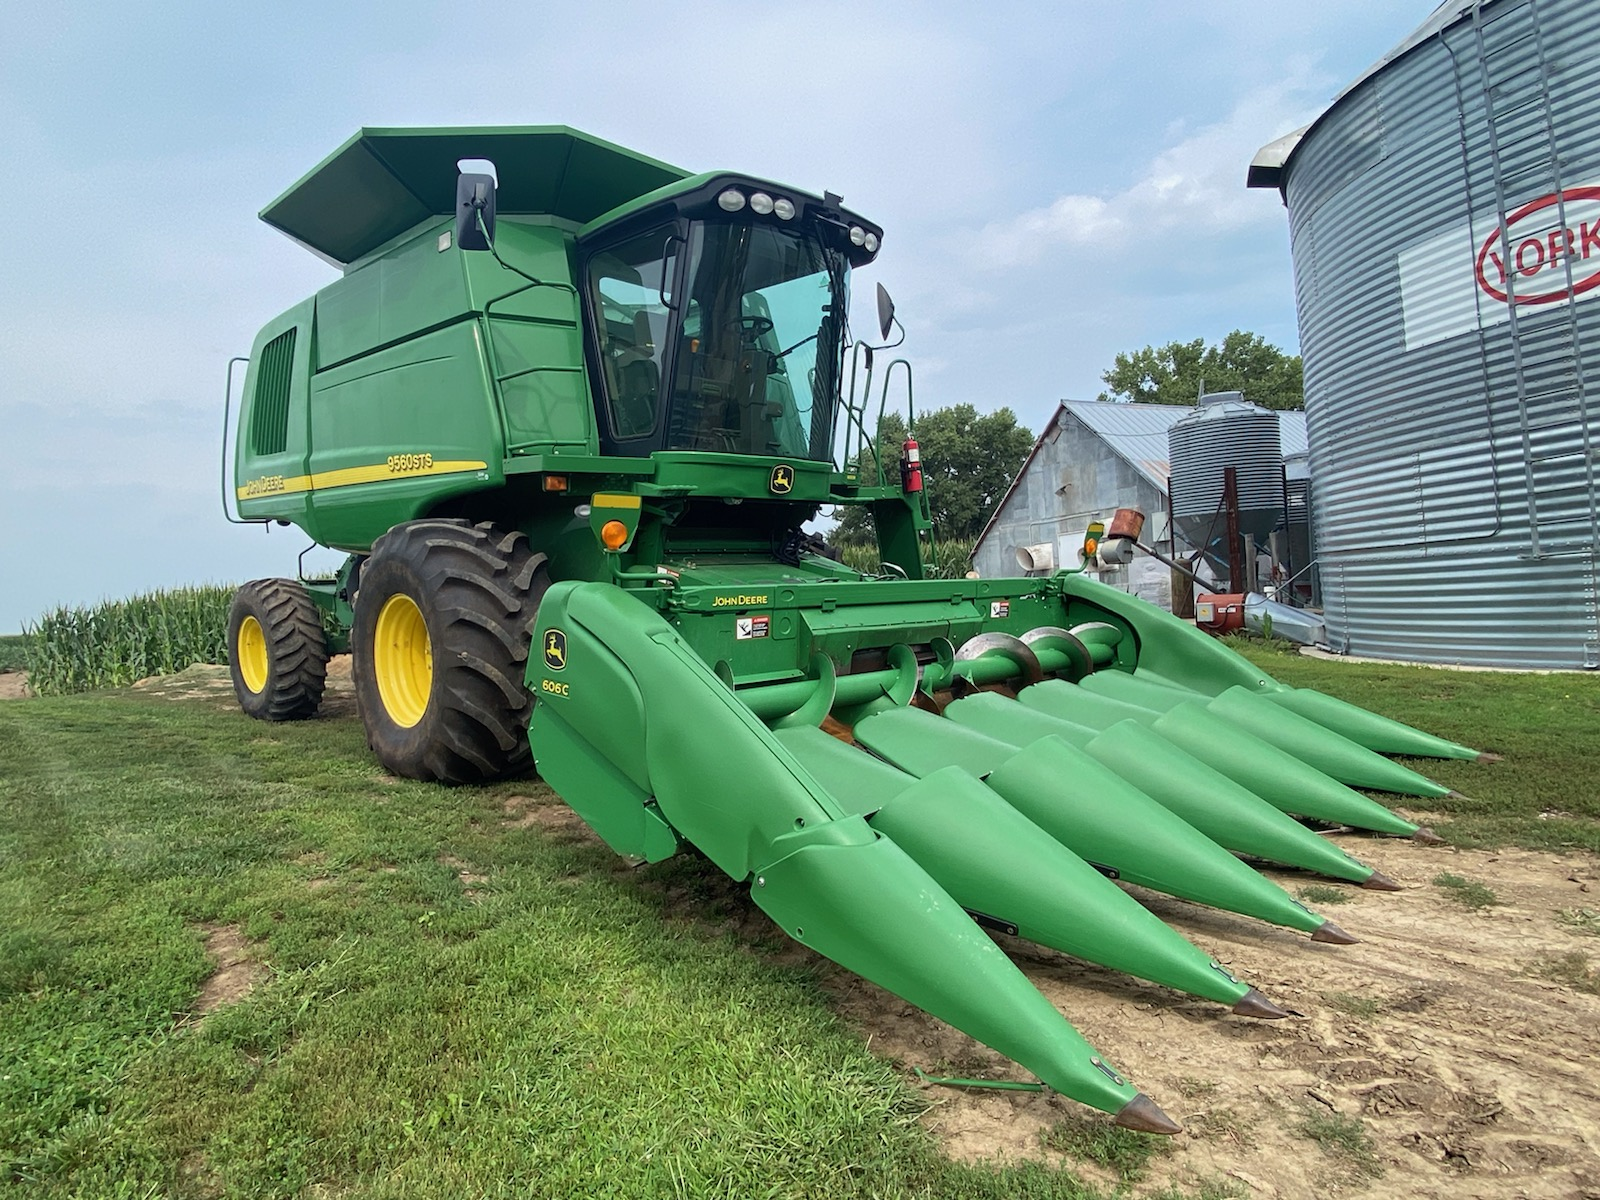 Featured image for the Gehring Farm Equipment Retirement Auction auction.